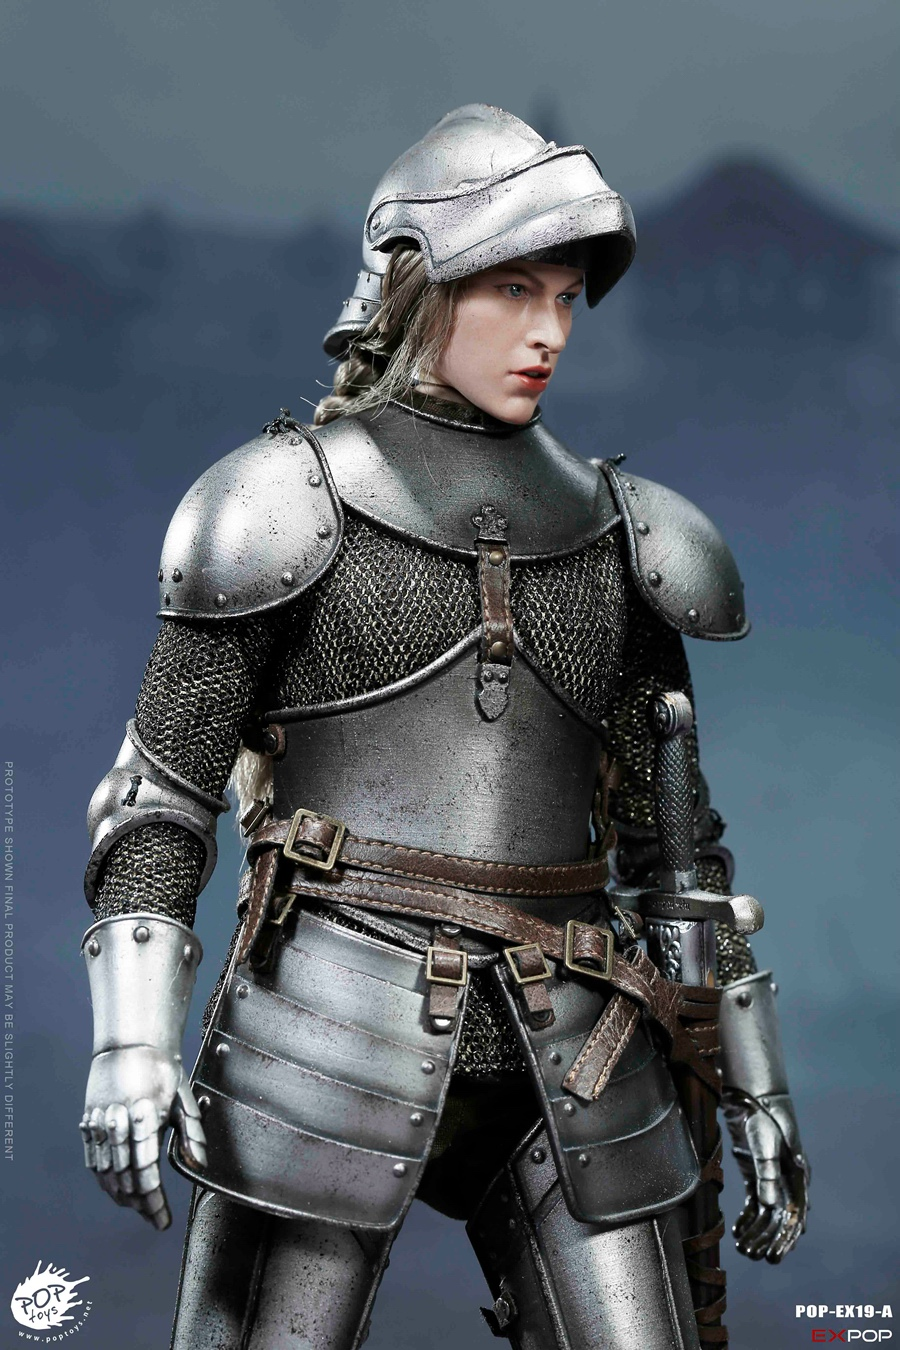 NEW PRODUCT: POPTOYS New Products: 1/6 St. Knights - Assault Edition & Triumph Edition & Iron Armor (POP-EX19 ABC) 16392111